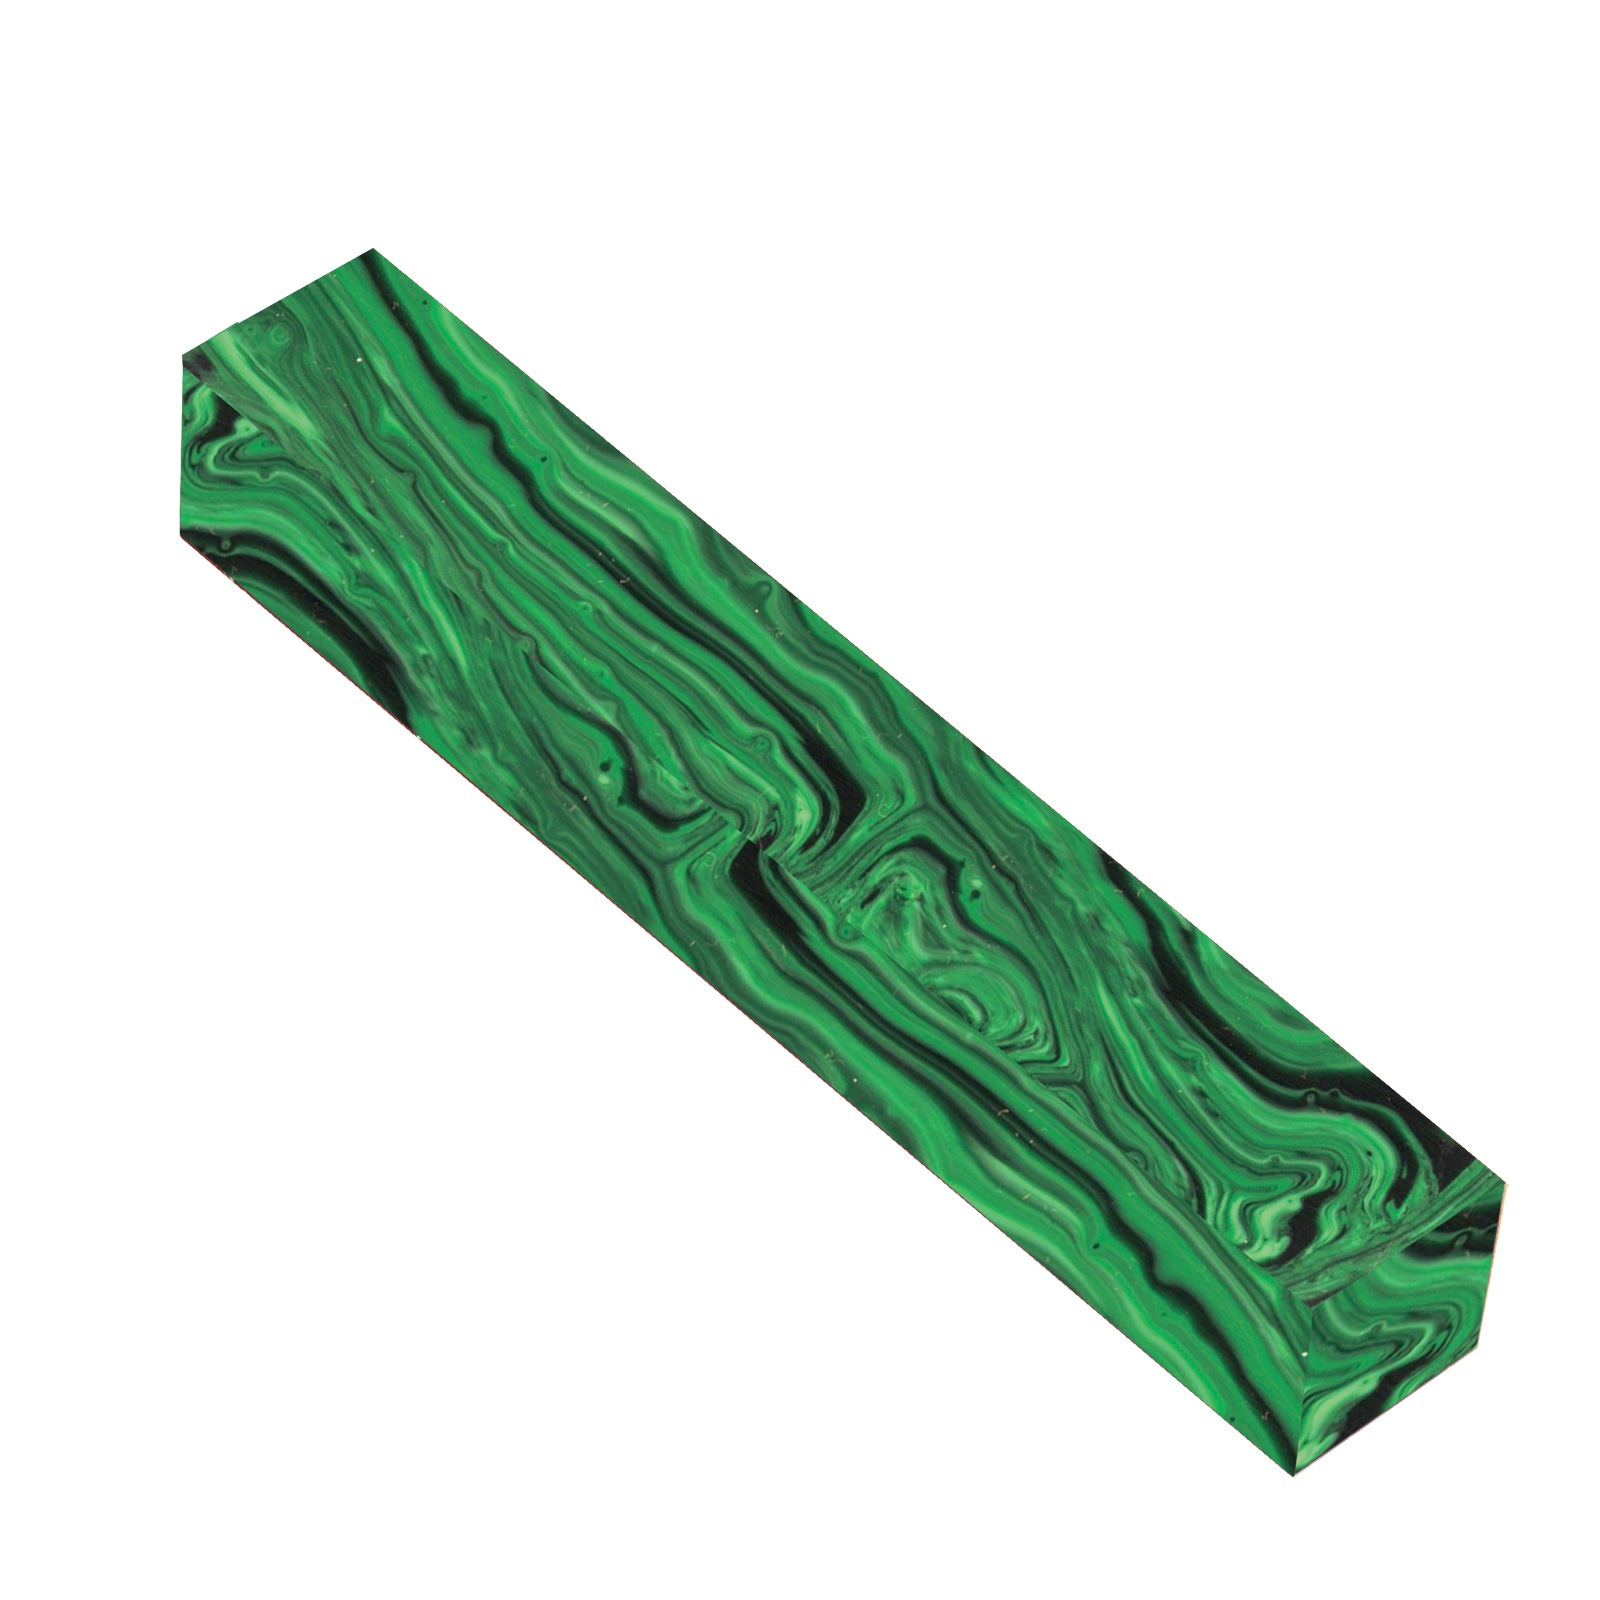 Tru Stone Malachite Green 3/4 in  x 3/4 in  x 5-1/2 in  Pen Blank